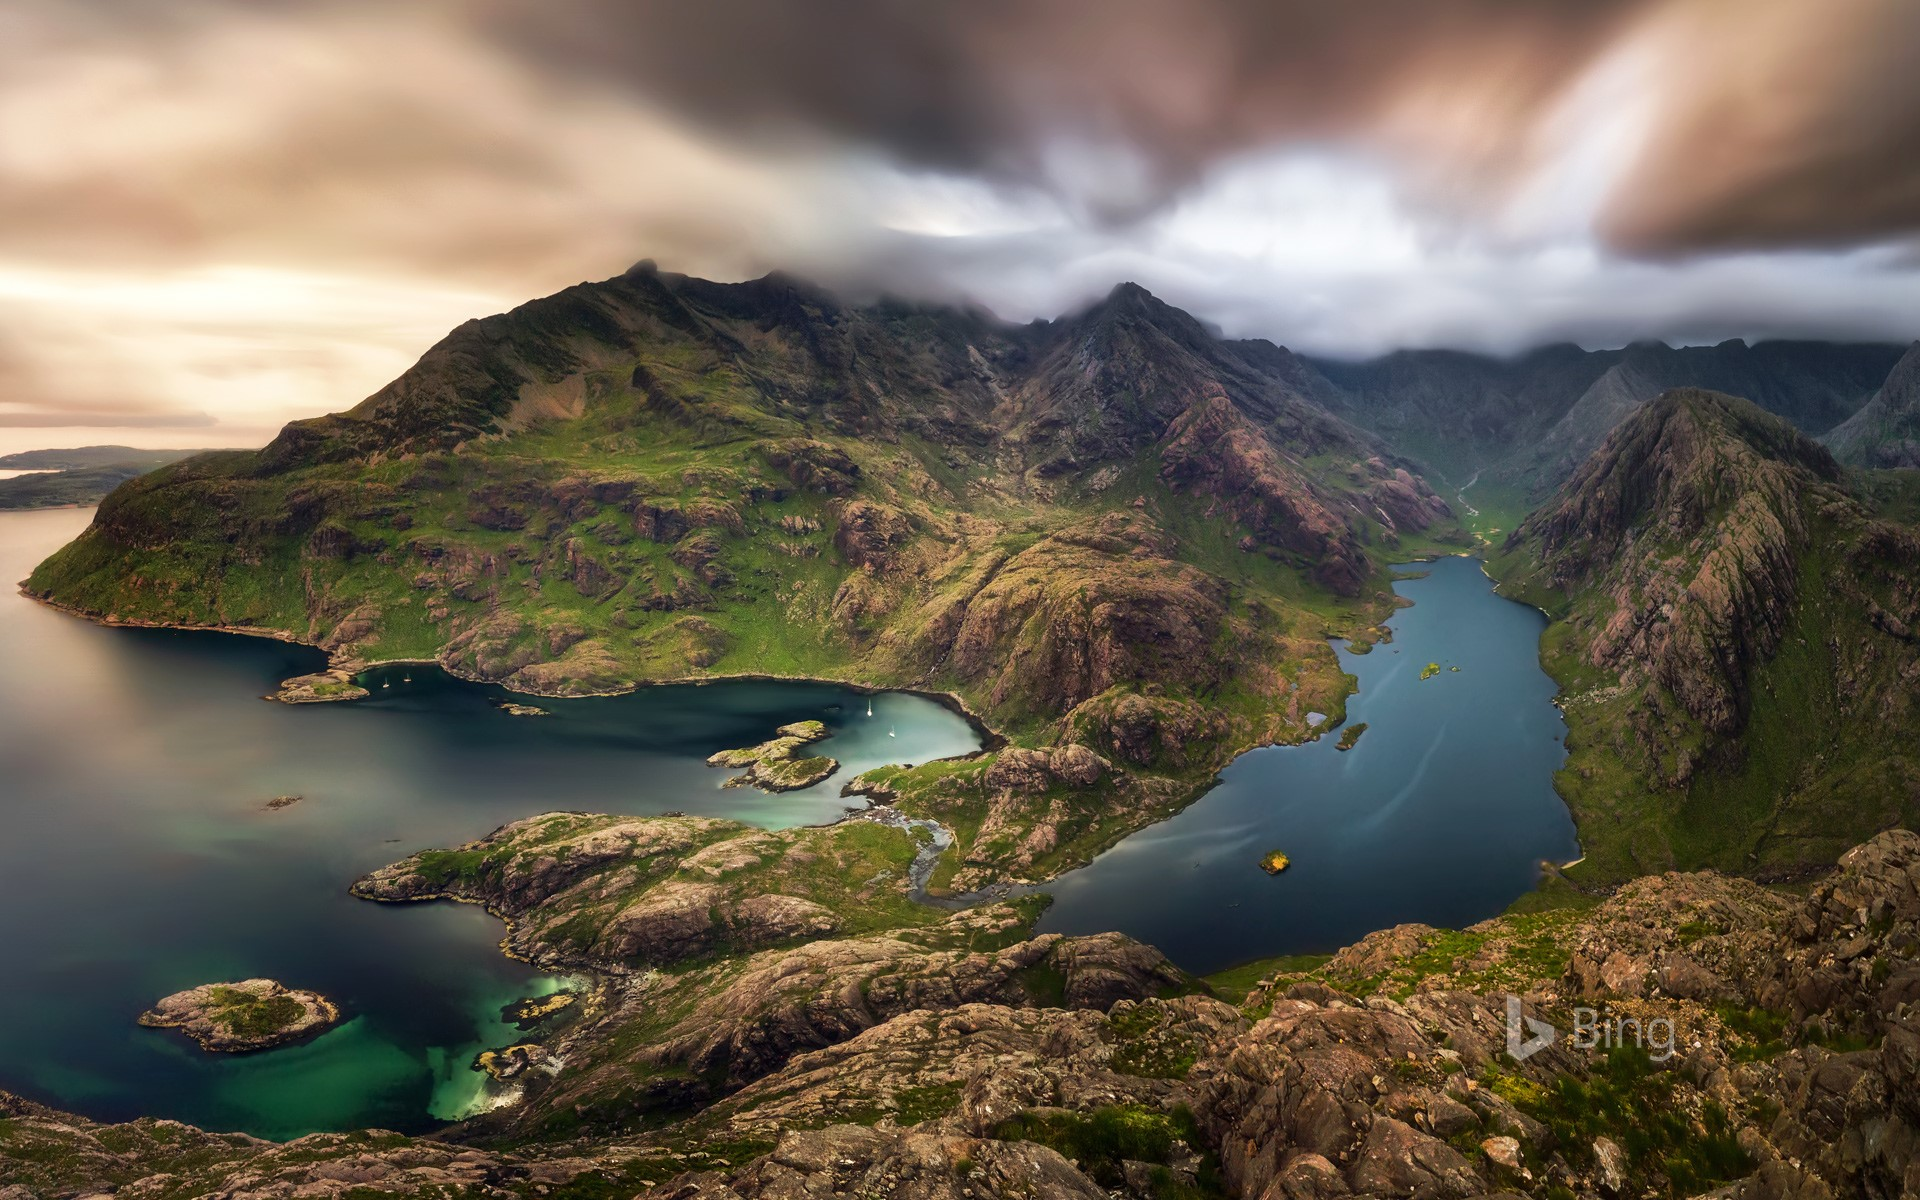 Loch na Cuilce and Loch Coruisk with the Black Cuillin in the background, Isle of Skye, Scotland